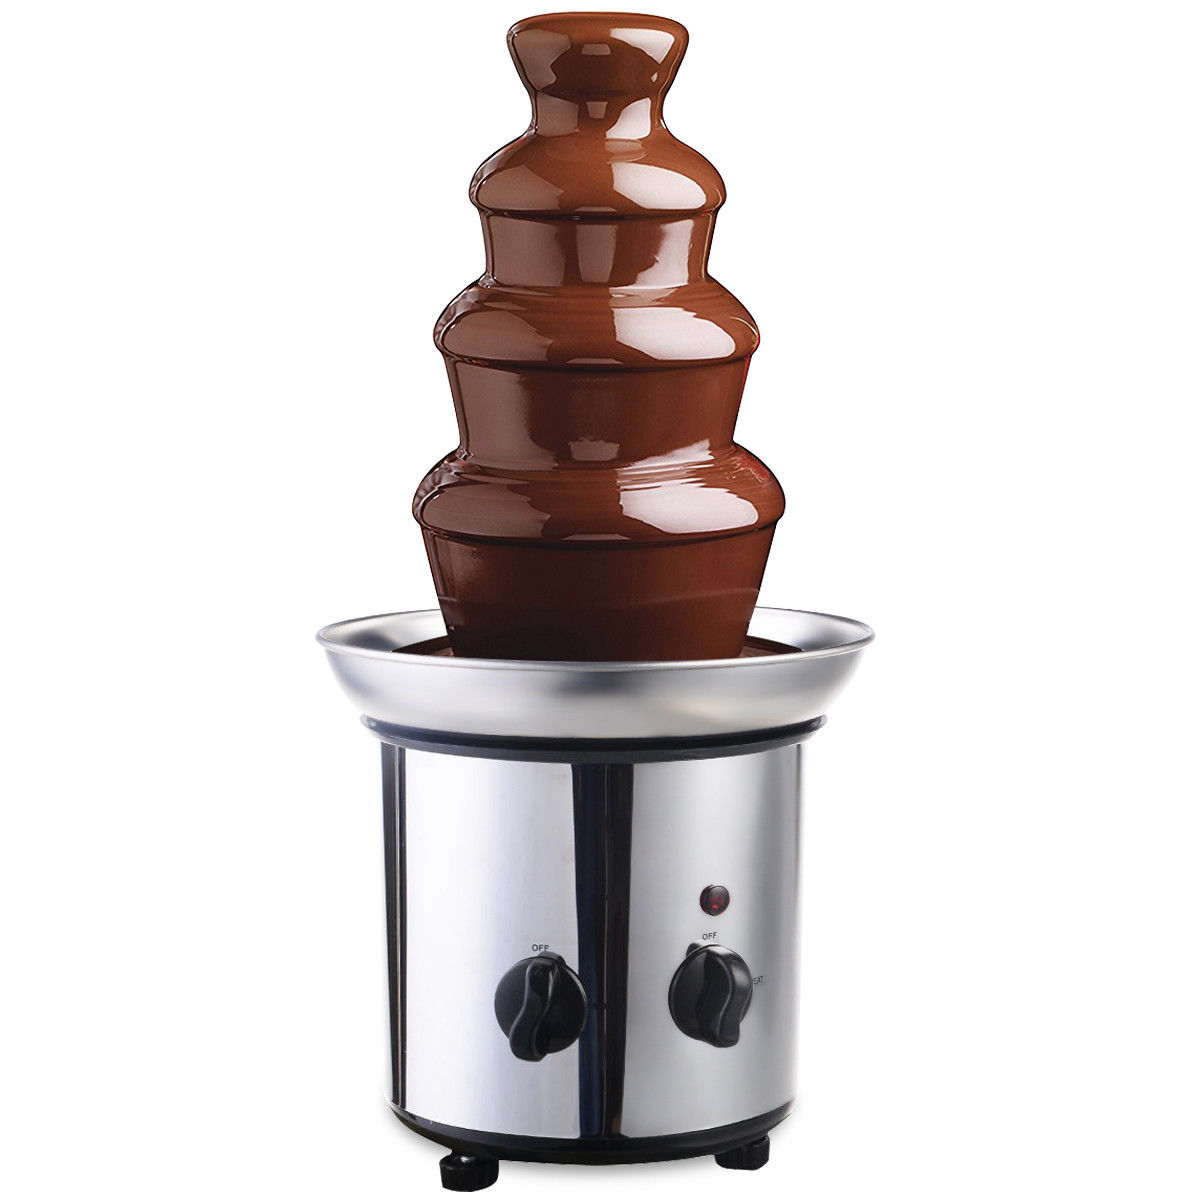 Gymax 4 Tiers Hot Luxury Chocolate Fondue Fountain Commercial Stainless Steel by Gymax